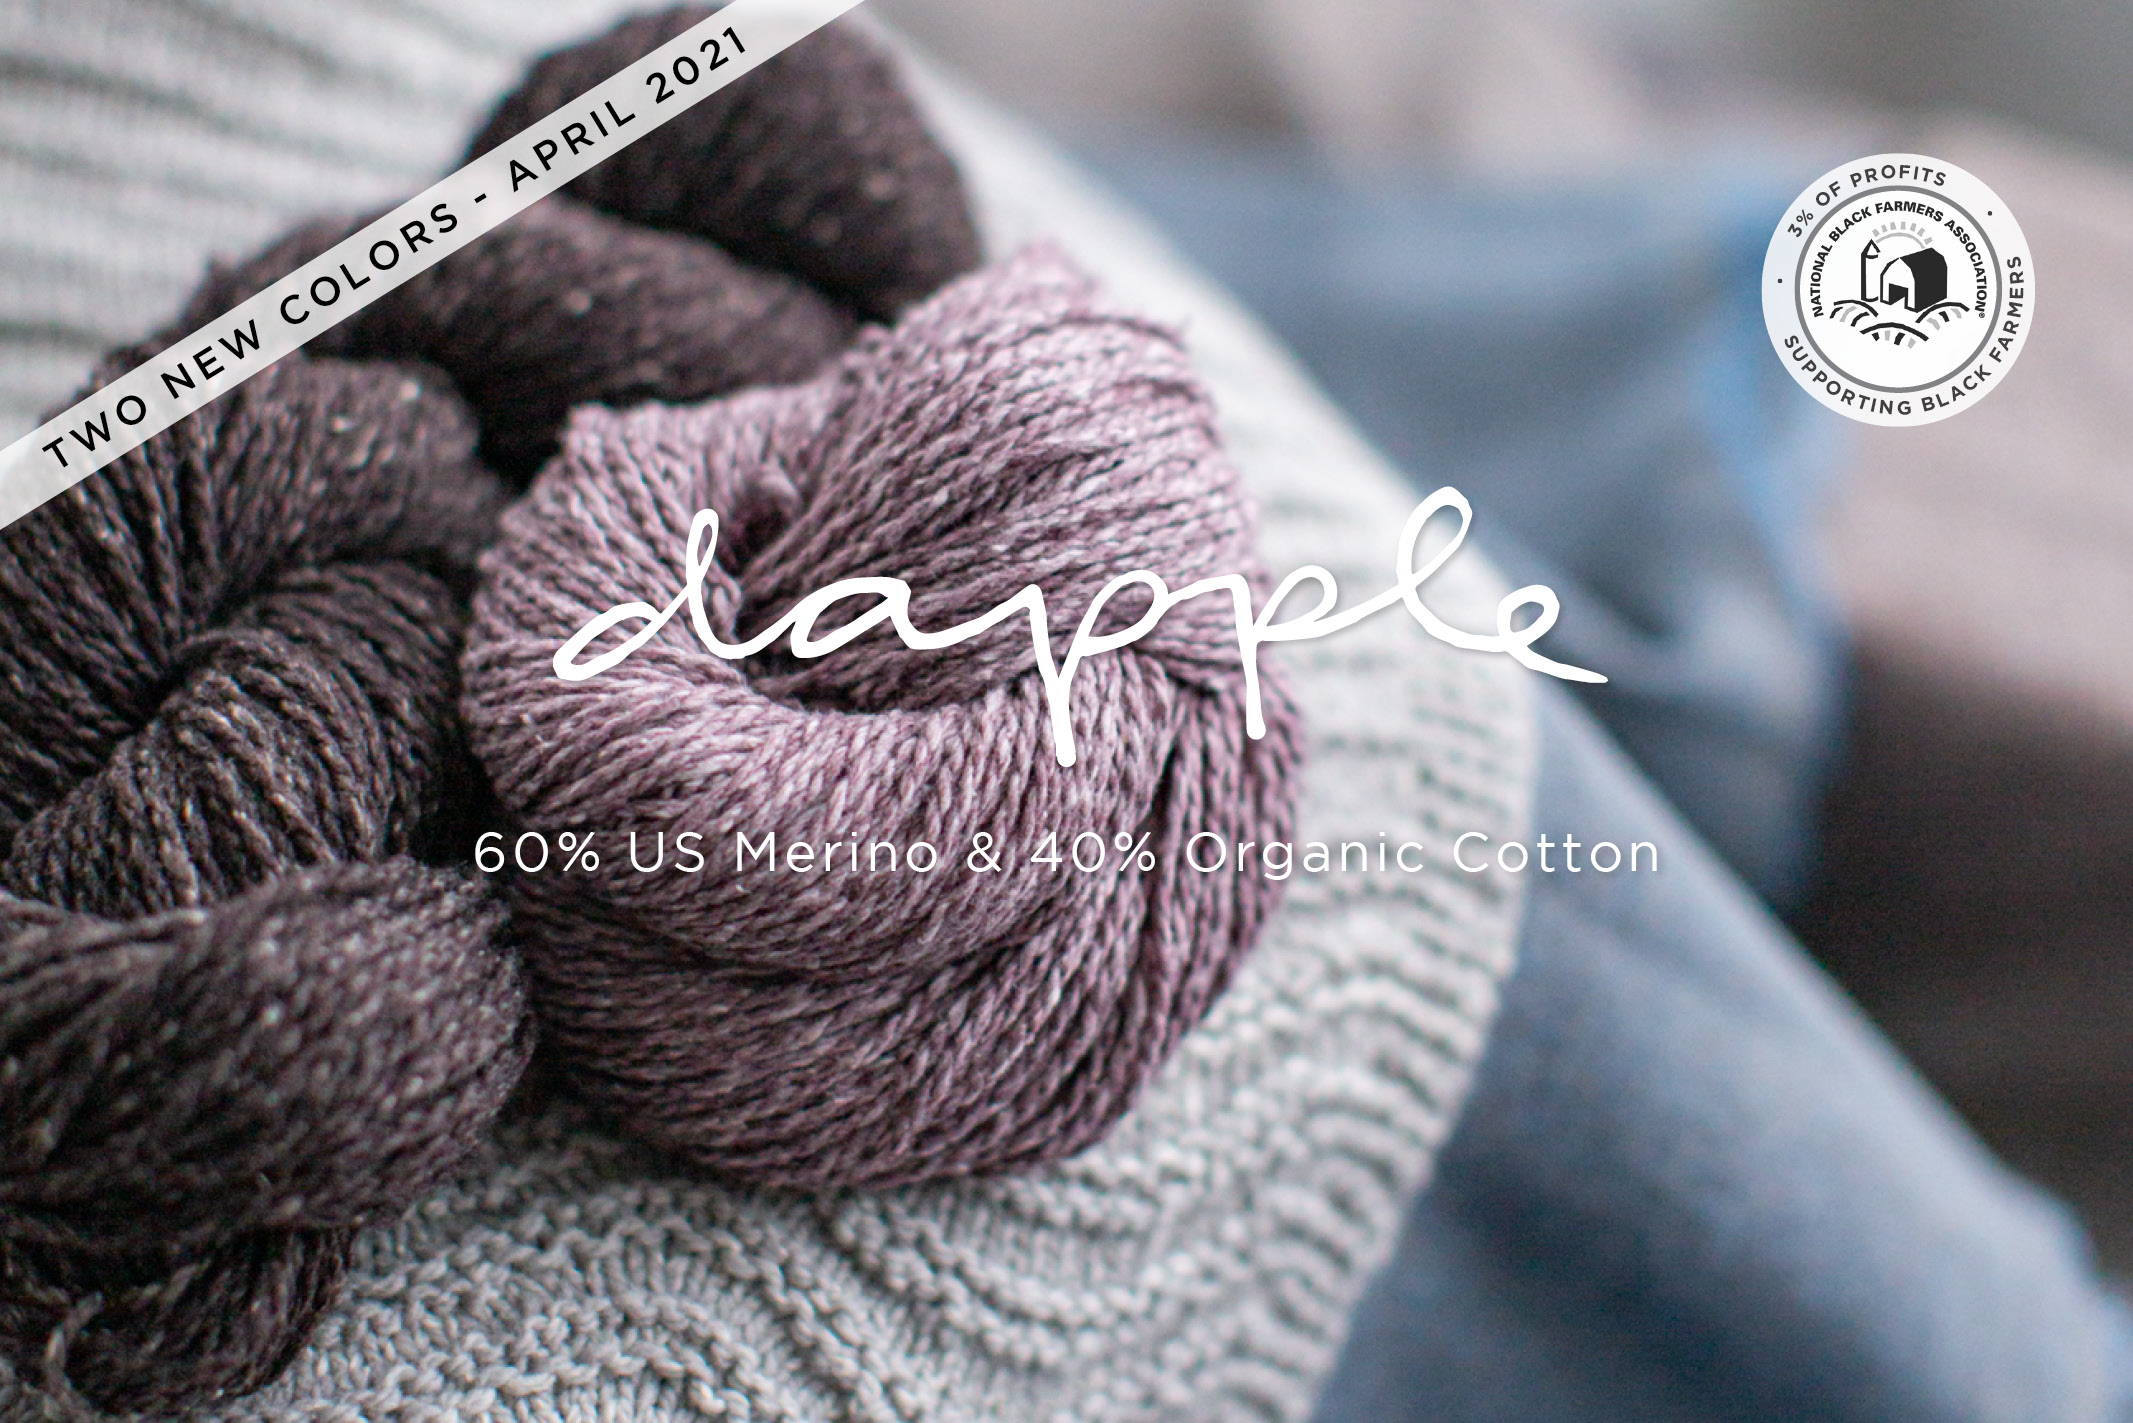 Dapple Yarn balls on table sitting on knitted fabric | 60% US Merino & 40% Organic Cotton